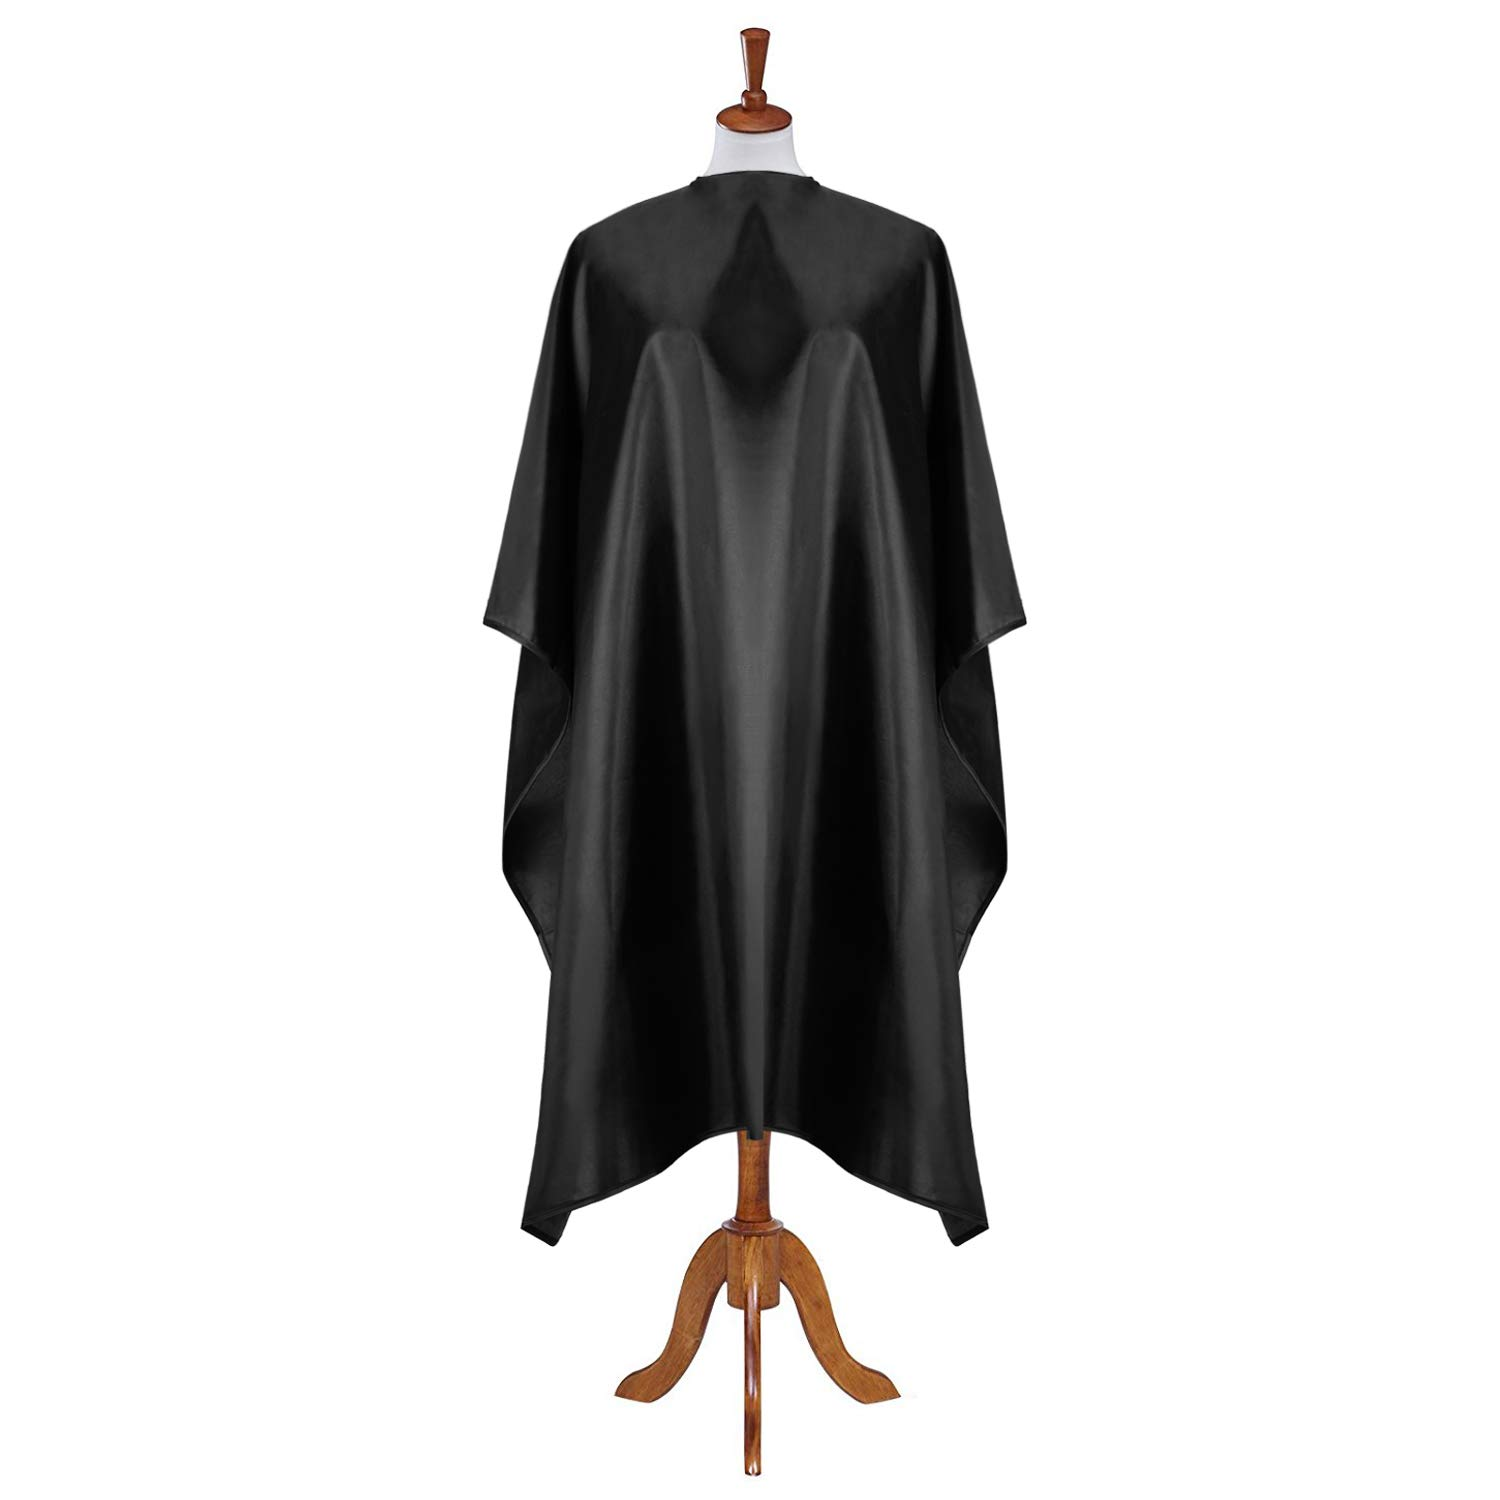 NOOA Hair Cutting Cape-Waterproof Haircut Apron with Adjustable Closure, 51 x 58inch Hairdressing Salon Nylon Cover, Styling Gown Fits for Barber & Home Use & Christmas gift : Beauty